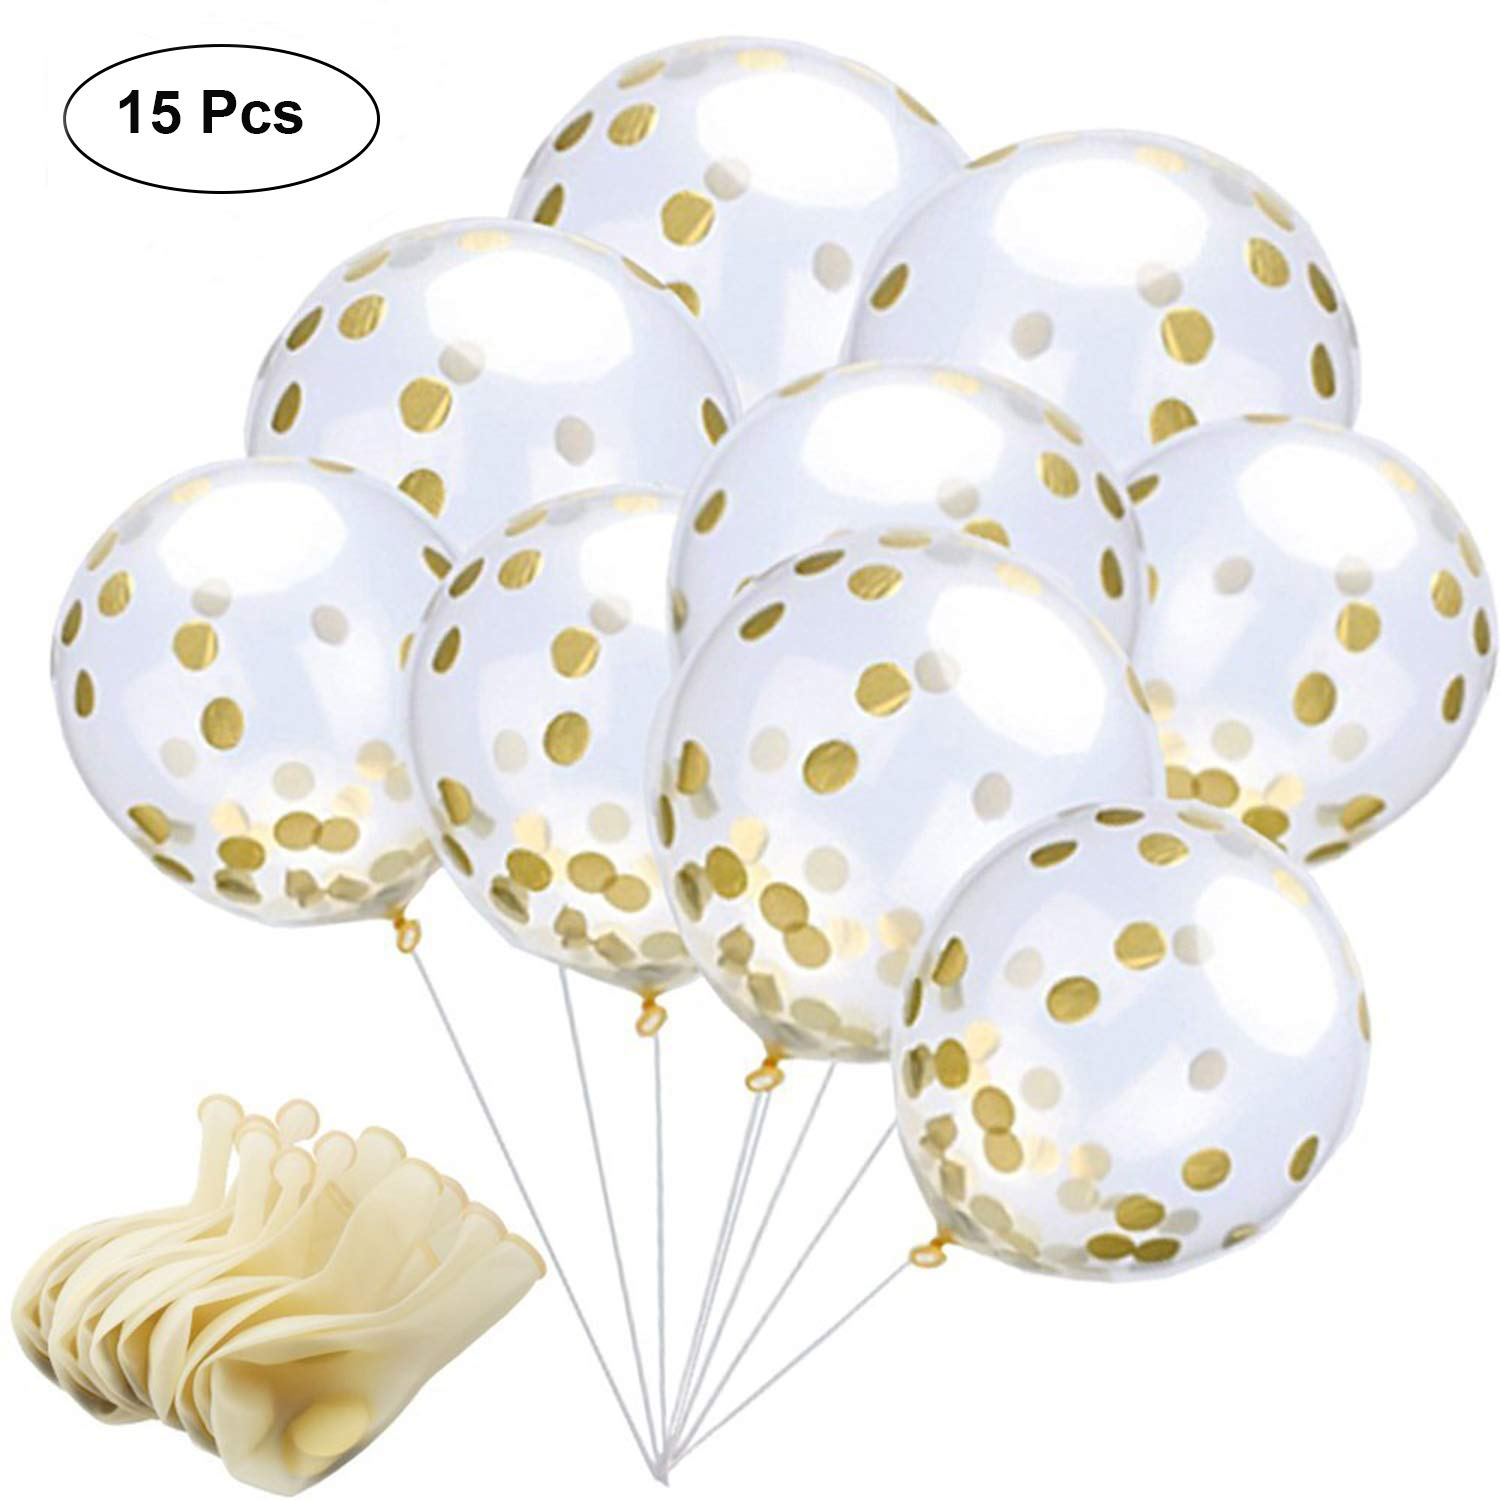 AMEITECH Gold Confetti Balloons, 12 Inches Clear Latex Party Balloons With Golden Paper Confetti Dots For Birthday, Wedding or Party Decorations (15 Pieces) (Gold Balloons) AMEIEU-06